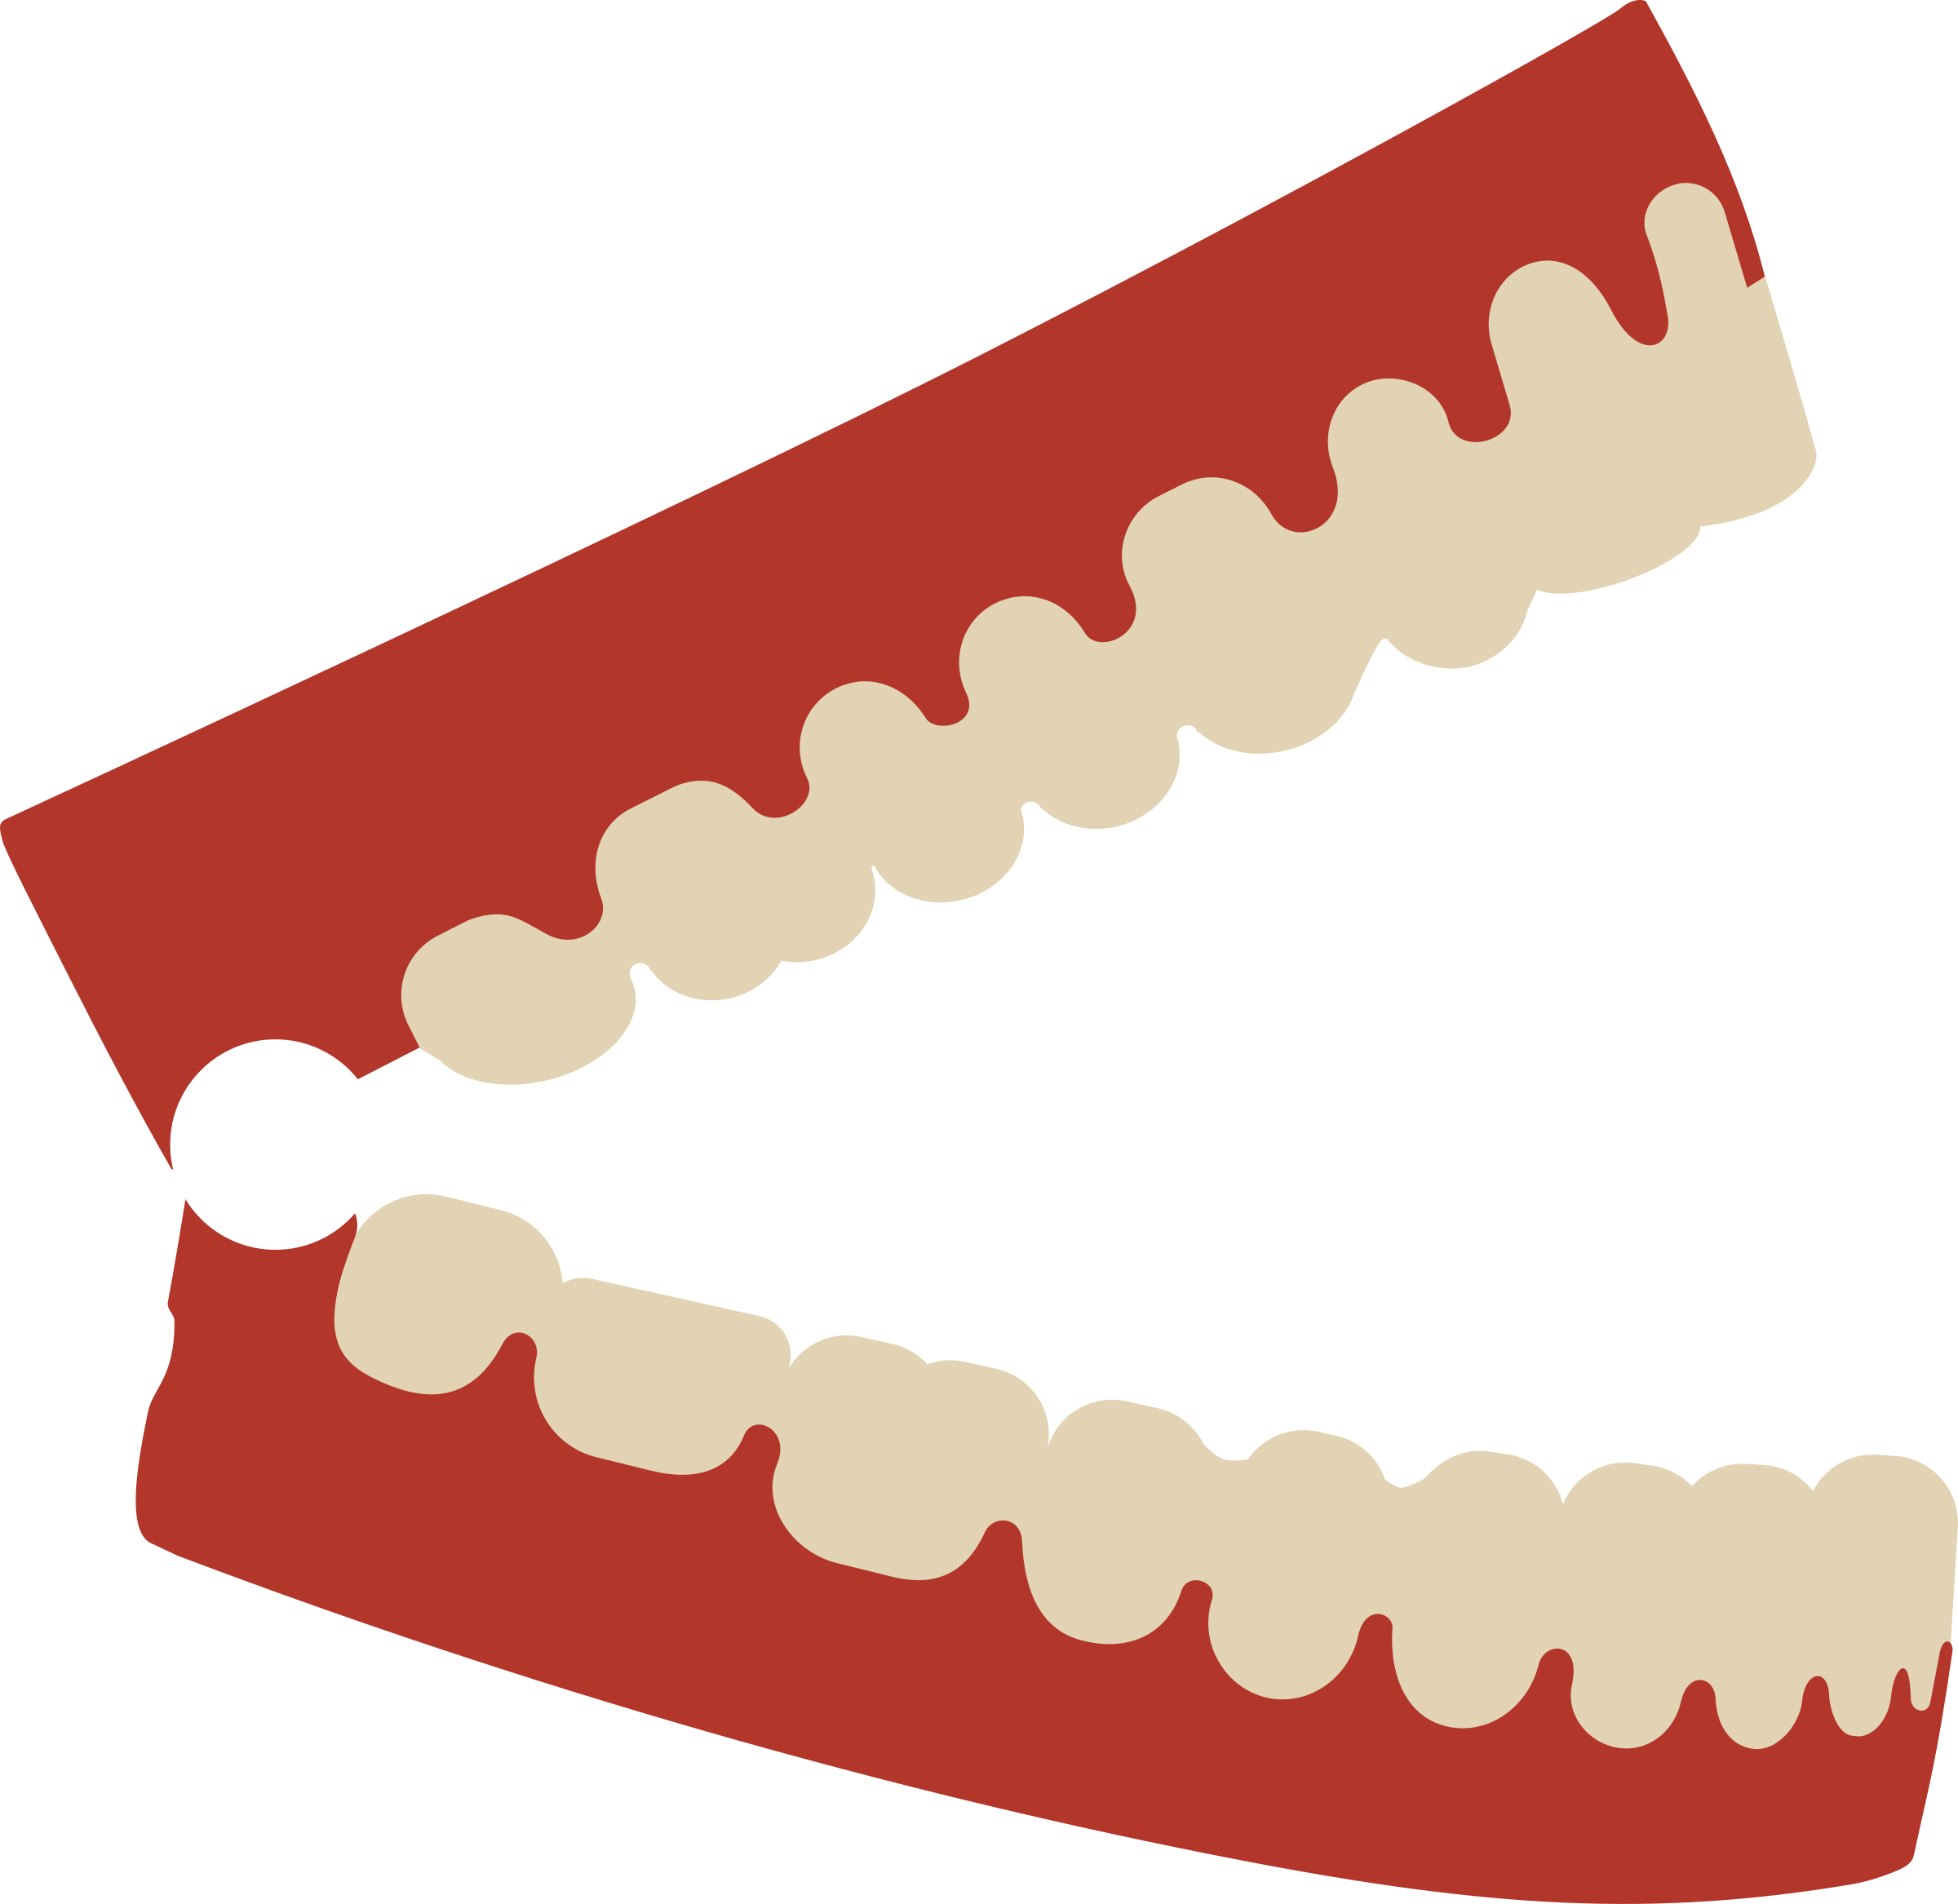 Chattering big image. Teeth clipart png banner free stock